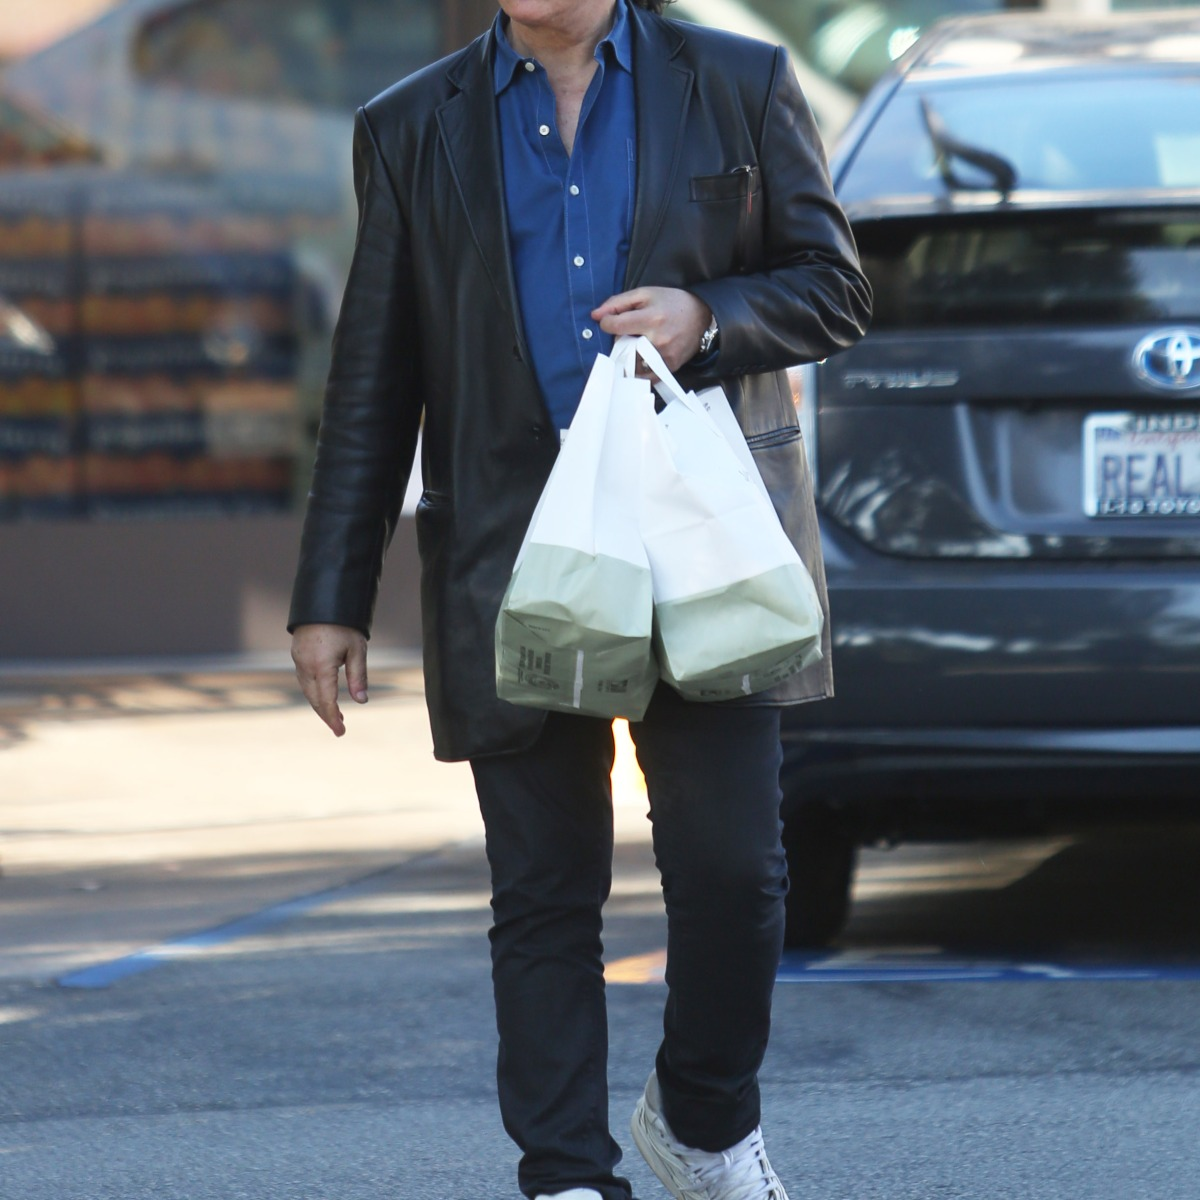 Kiss Frontman Gene Simmons Helps Wife Shannon Tweed With the Groceries After Visiting the Market